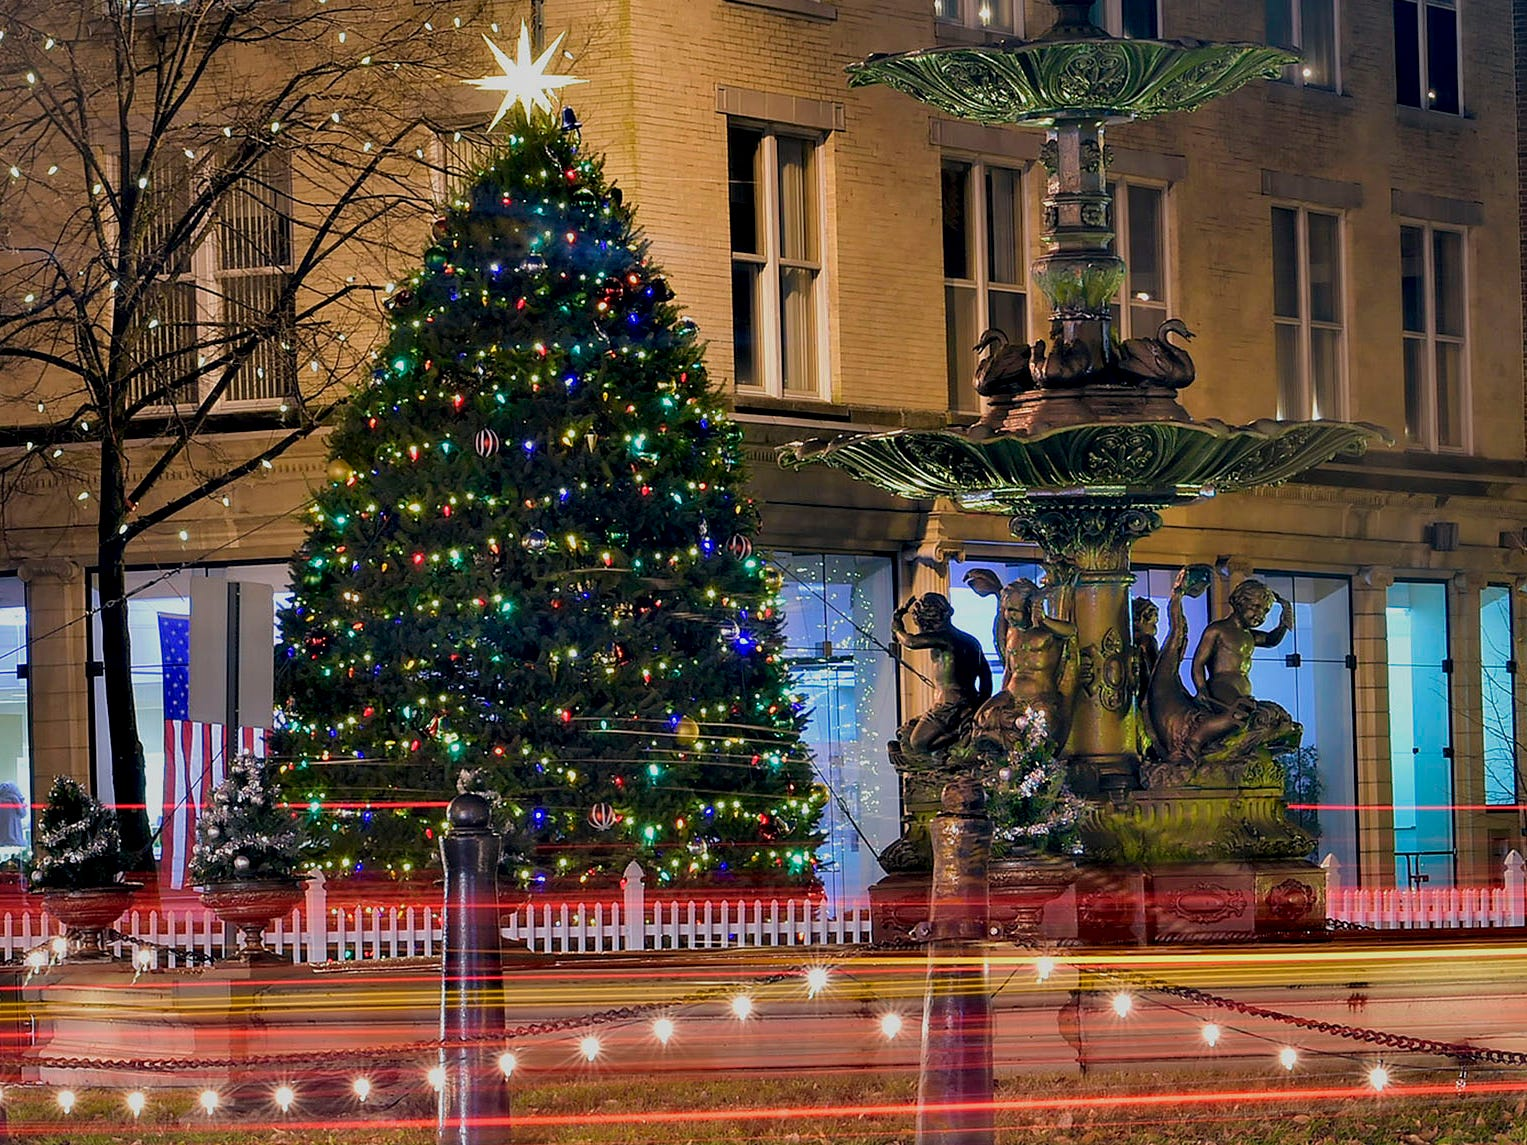 The Chambersburg Christmas tree lights up Memorial Square as seen on November 26, 2018.